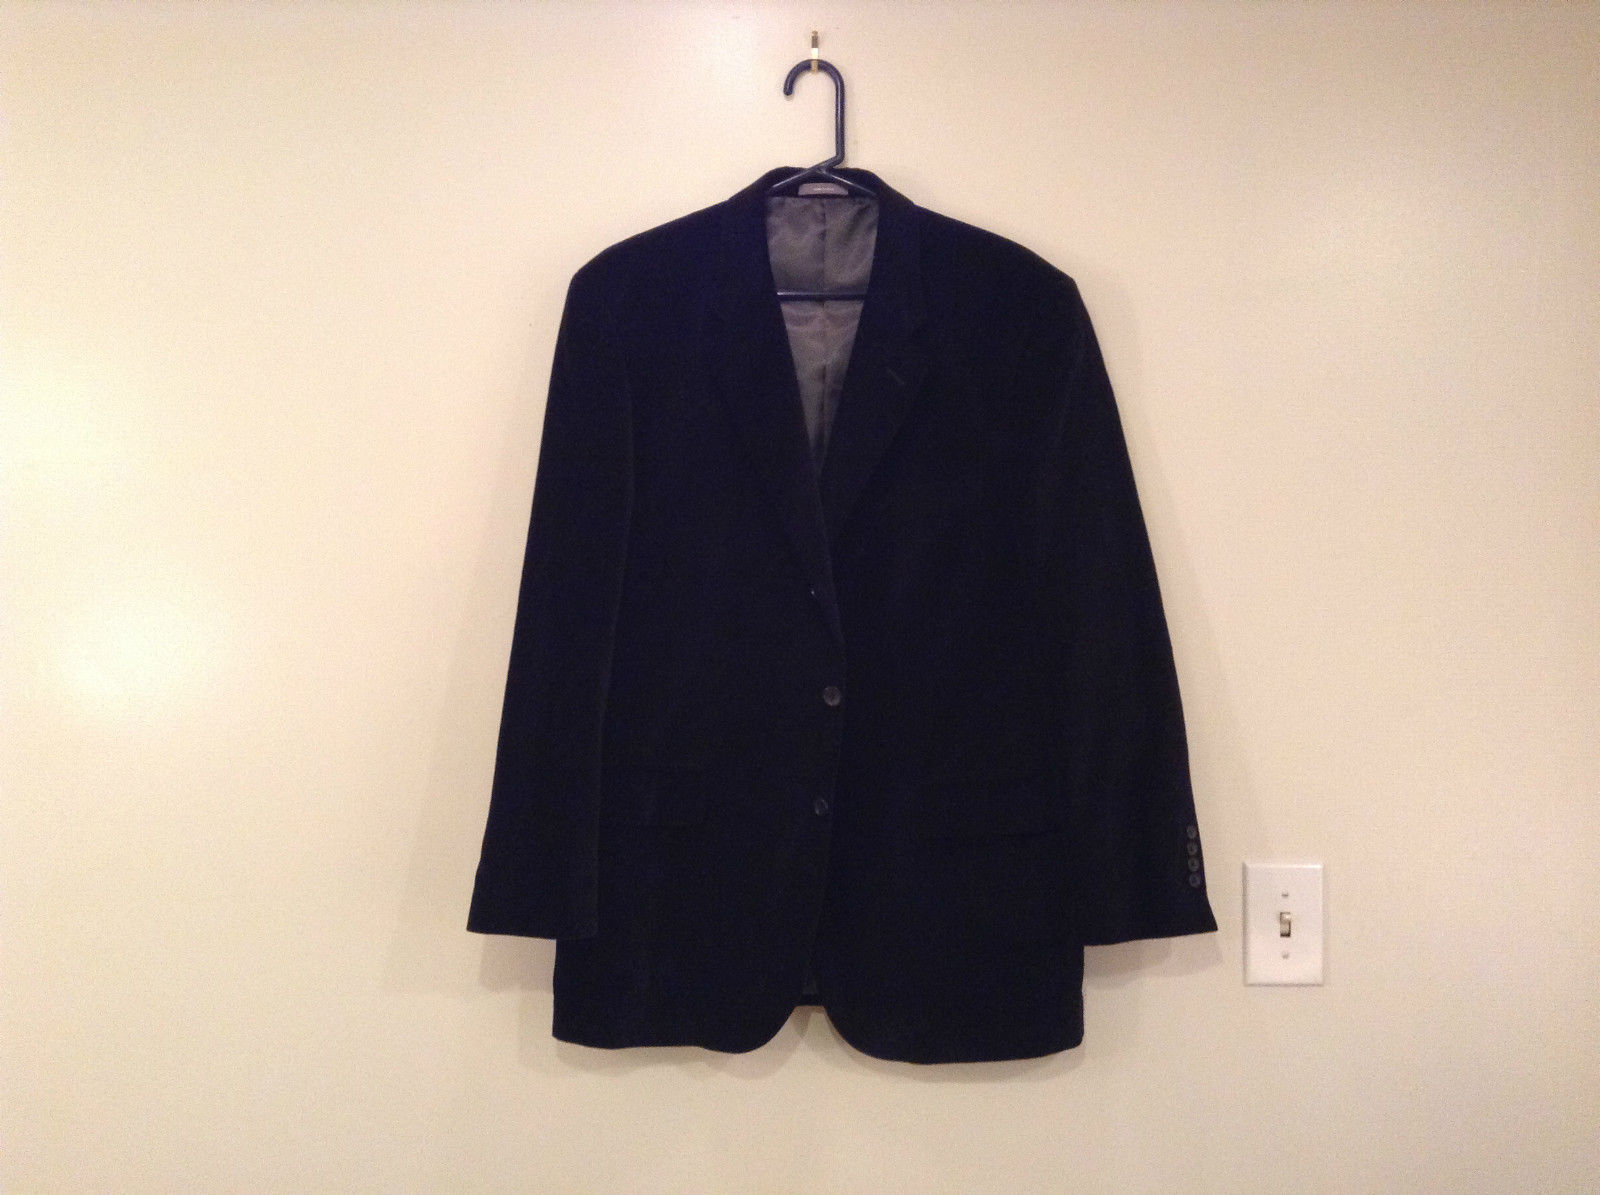 Size 42R 100 Percent Cotton Apt 9 Fully Lined Black Suit Jacket Velvet Fabric